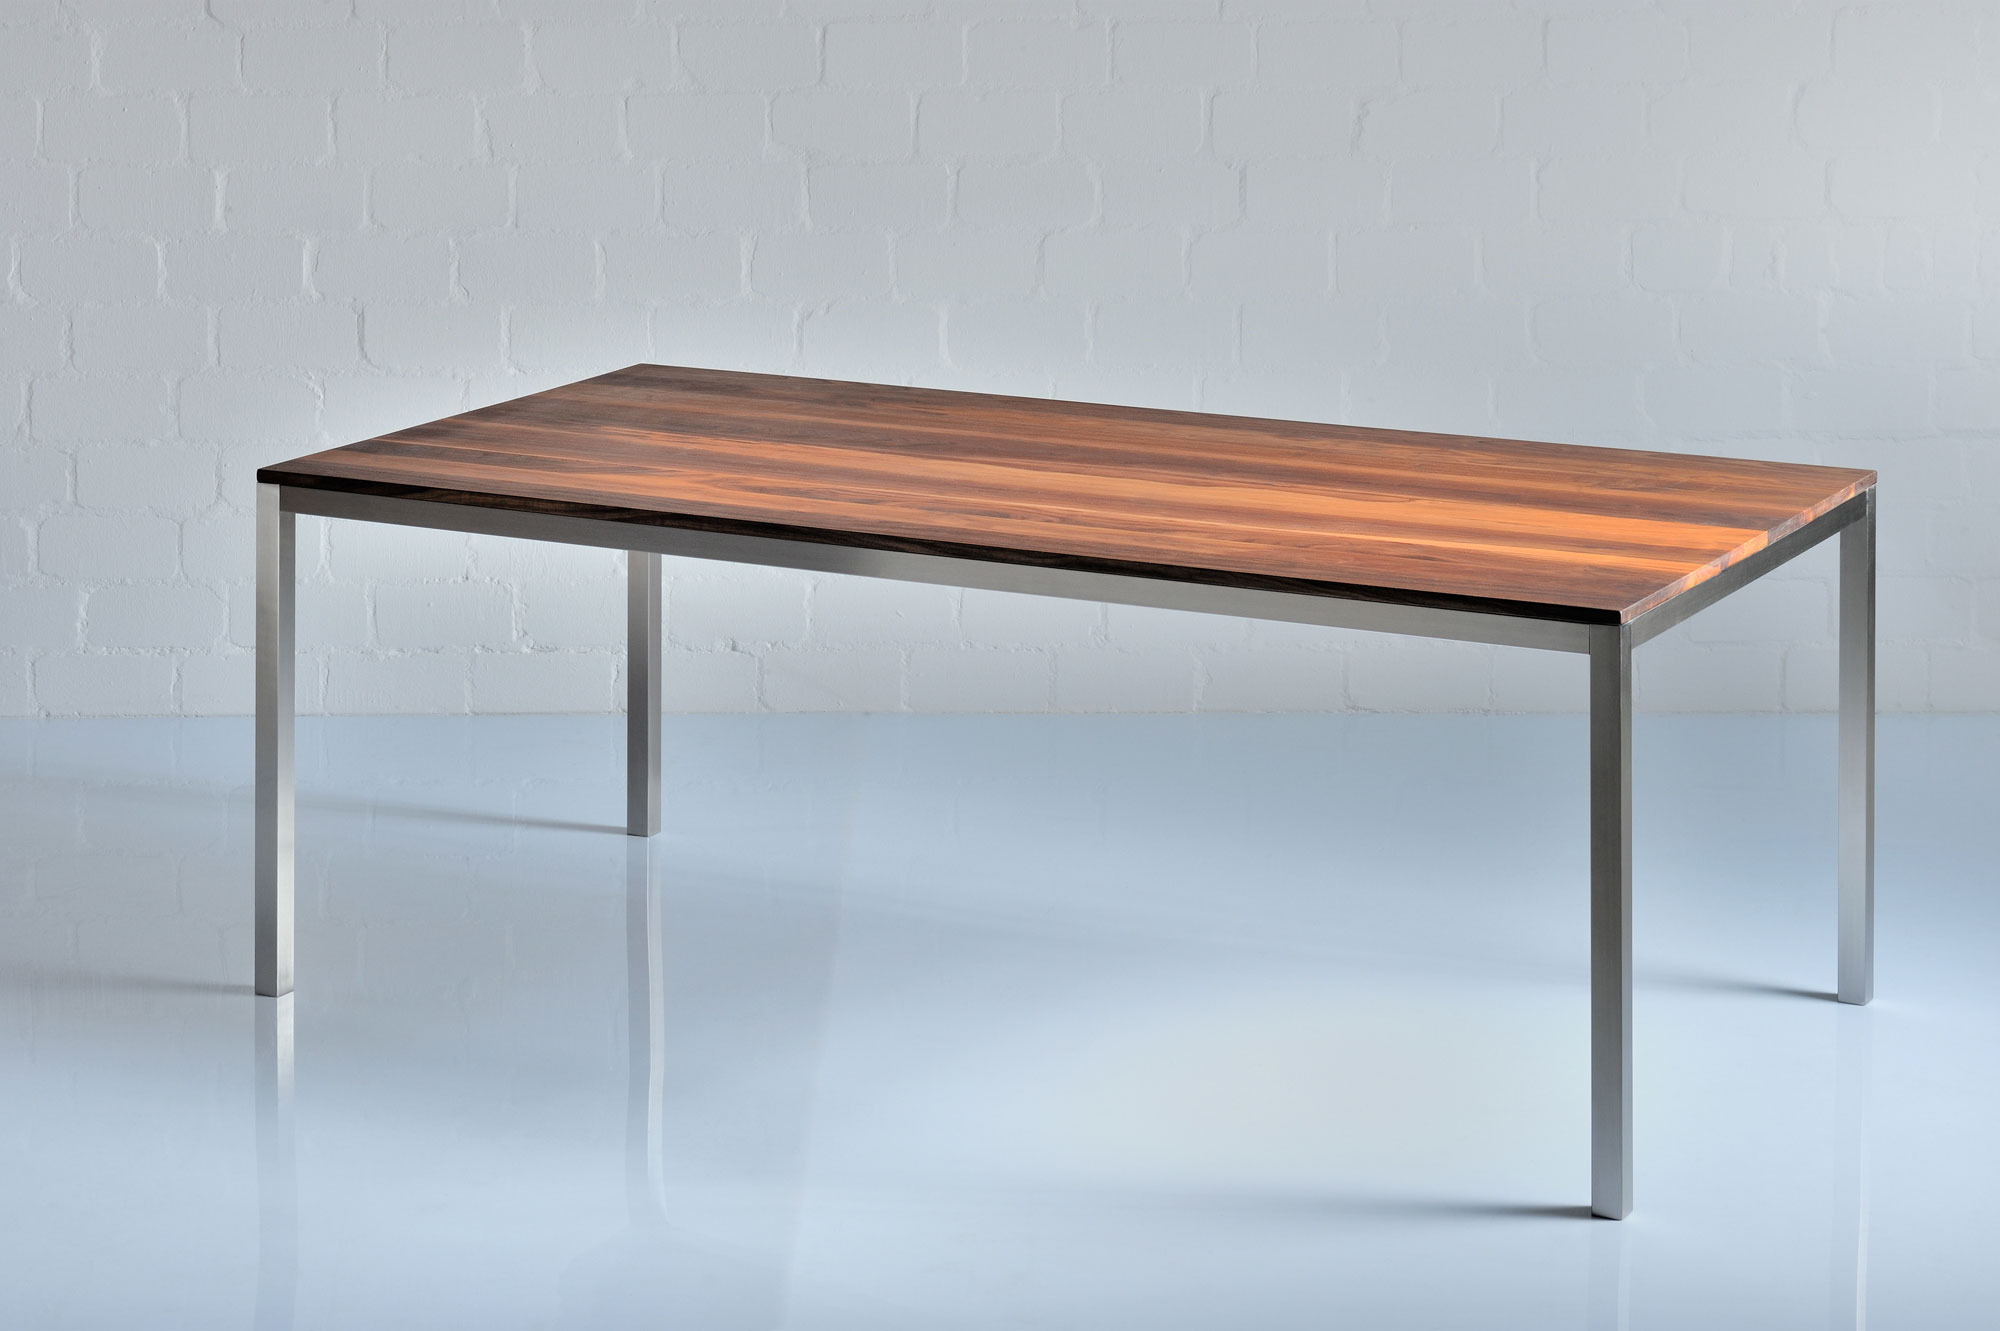 Aluminium Wood Table NOJUS 0988a custom made in solid wood by vitamin design